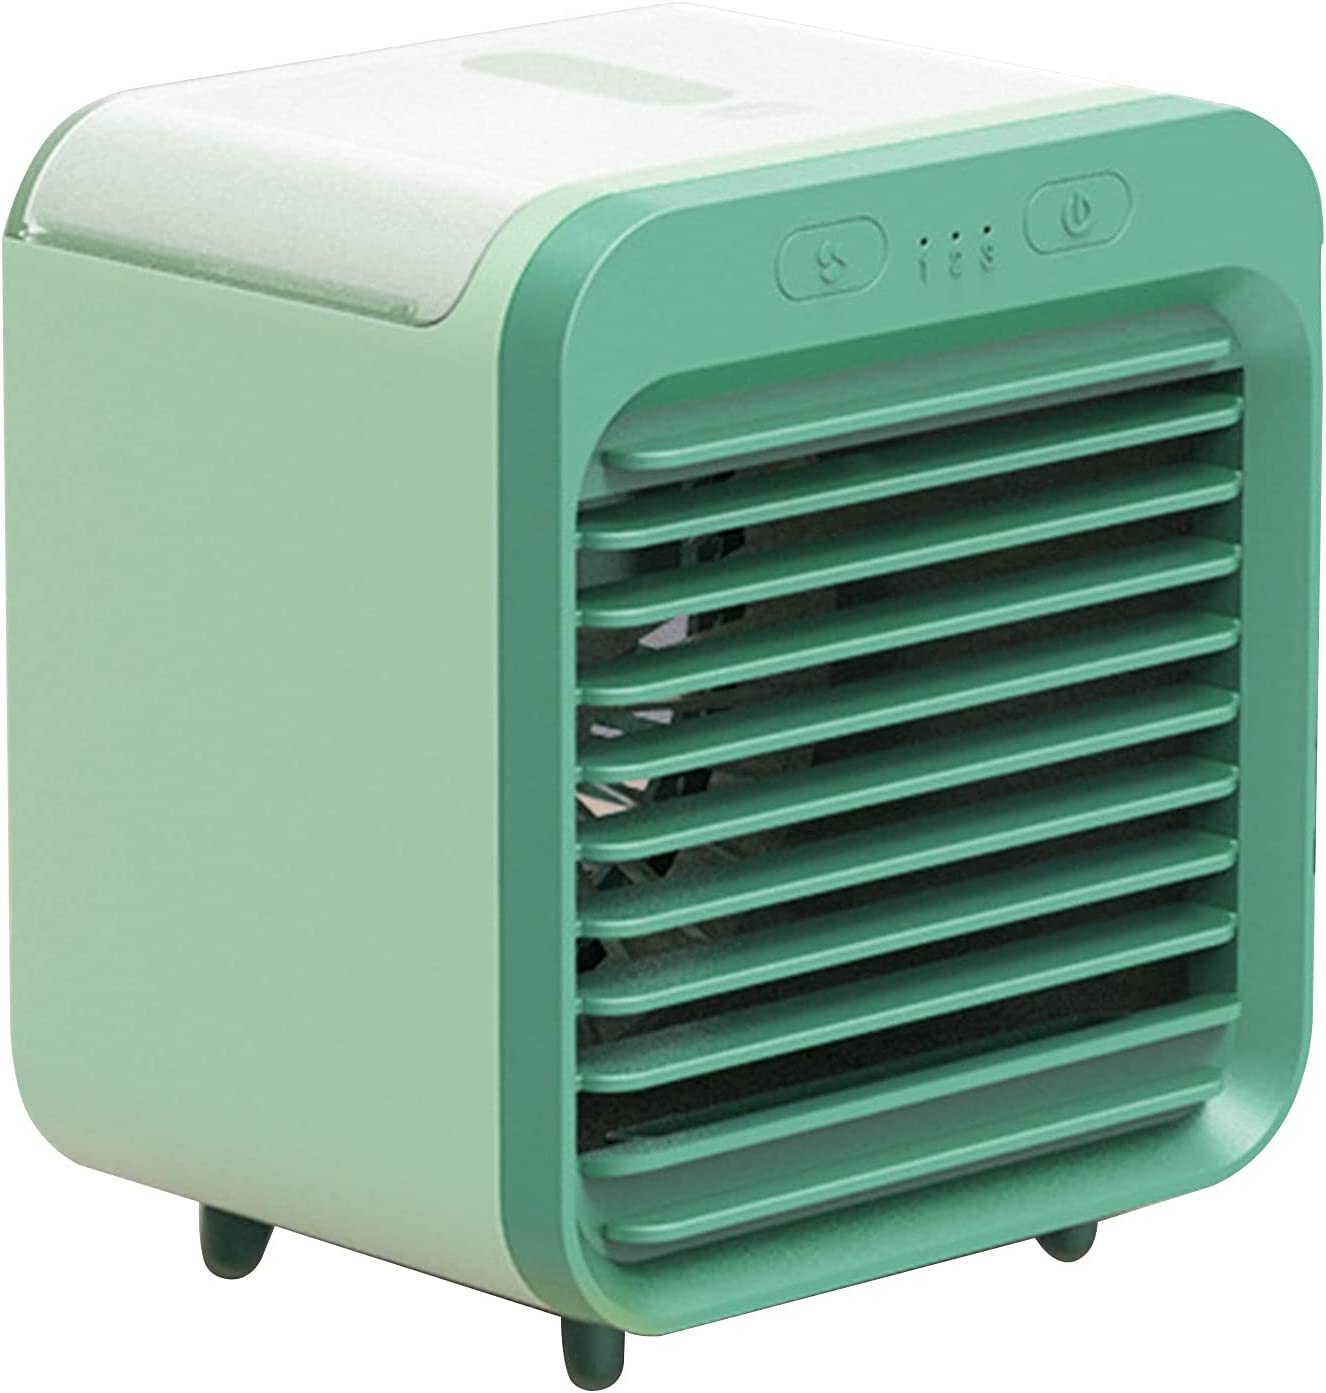 Air Cooler Mini Beauty products Over item handling ☆ Fan Purifier Conditioning Humidifier